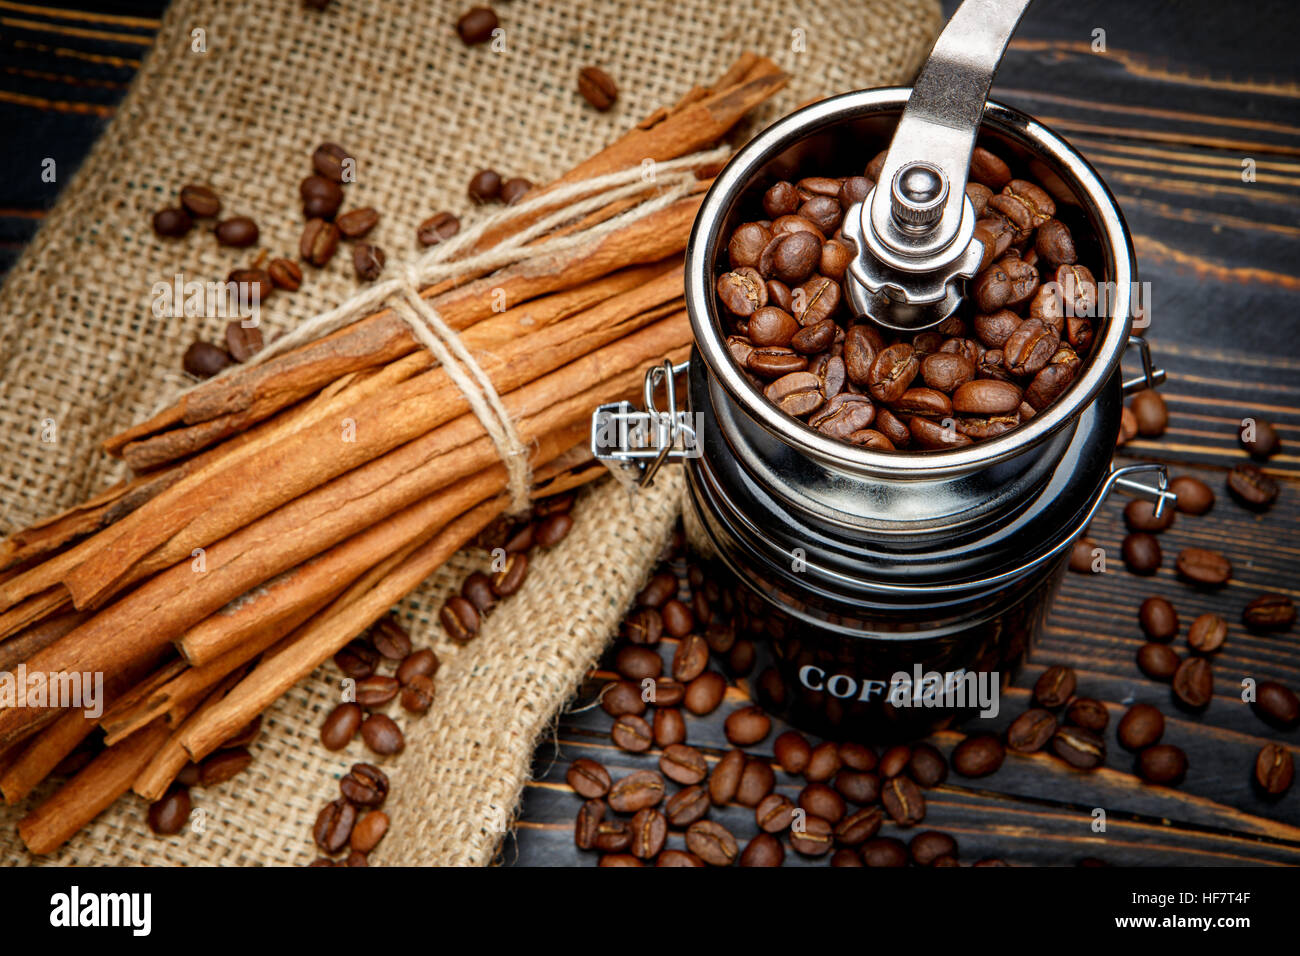 coffee mill and roasted beans on wooden background - Stock Image